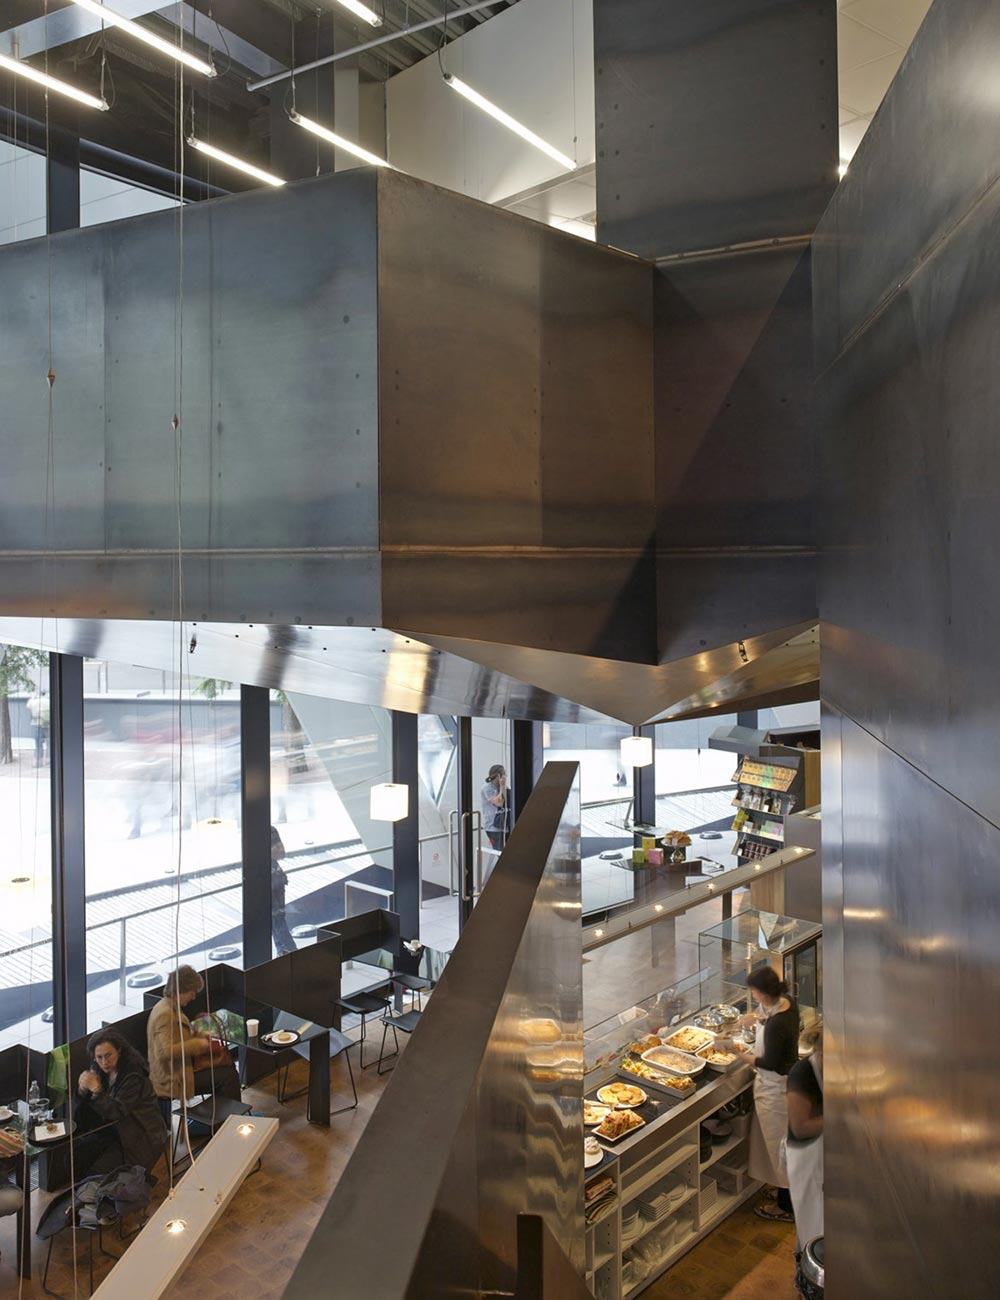 A shop, café and specialist kitchen are accommodated within the double-height ground floor space behind the entrance to 30 St Mary Axe. A new commercial kitchen level is suspended from the ceiling creating a striking, sculpted steel ceiling to the café level below. Both the mezzanine and stair are fabricated from 3mm steel panels. Steel is also used for furniture, while warmth is added by an end-grain oak floor and distinctive glass panels, back painted in a rich purple hue that allows the seamless integration of the client's established brand. We provided all mechanical and electrical services.